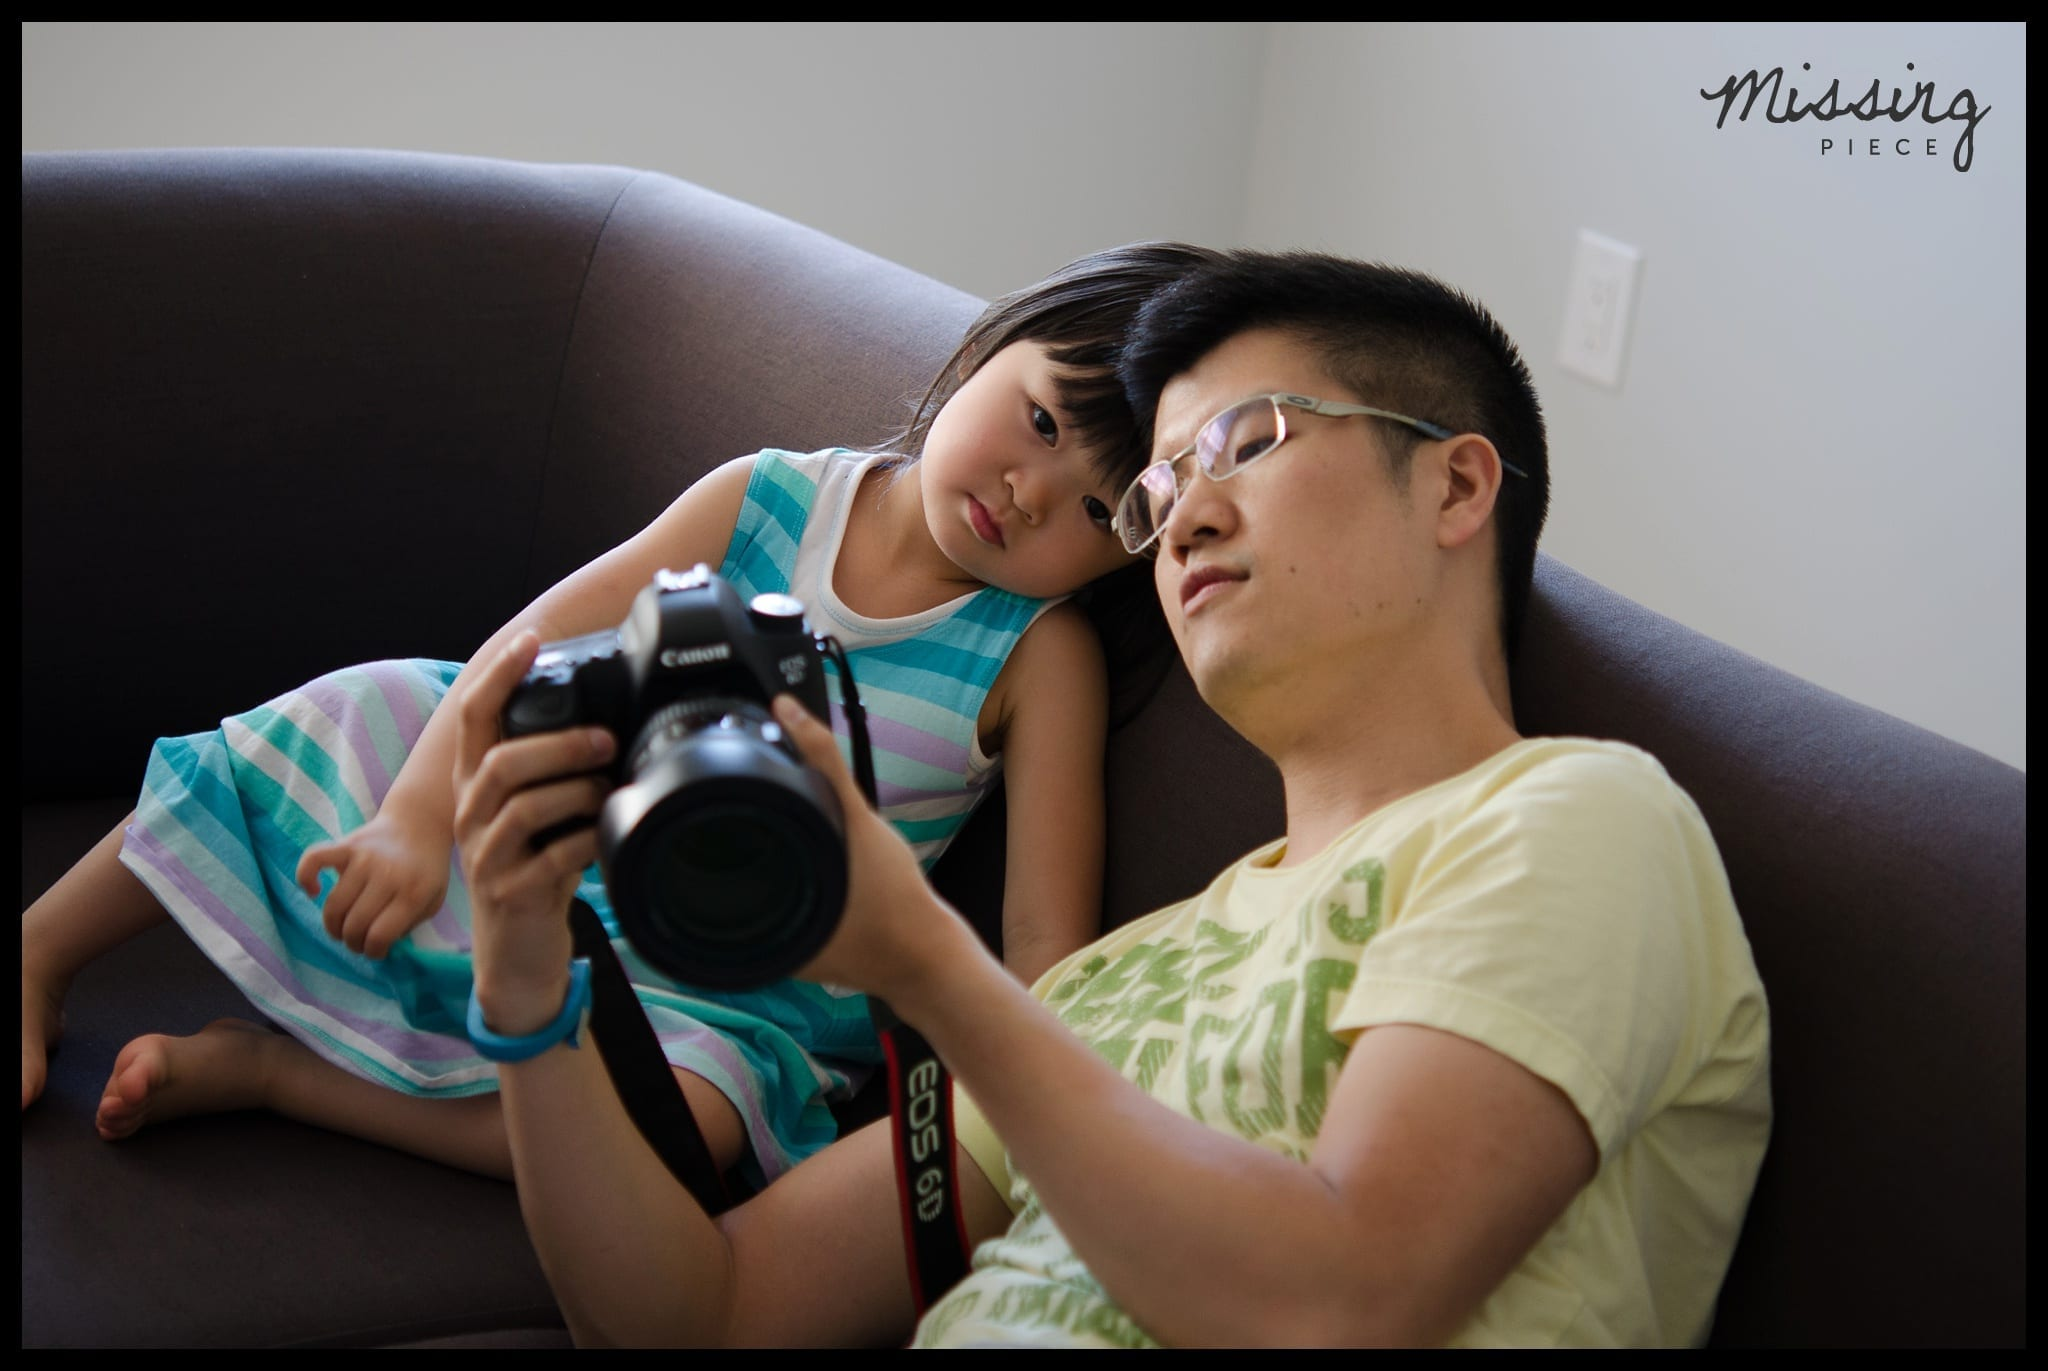 man showing him photos on his dSLR to his niece